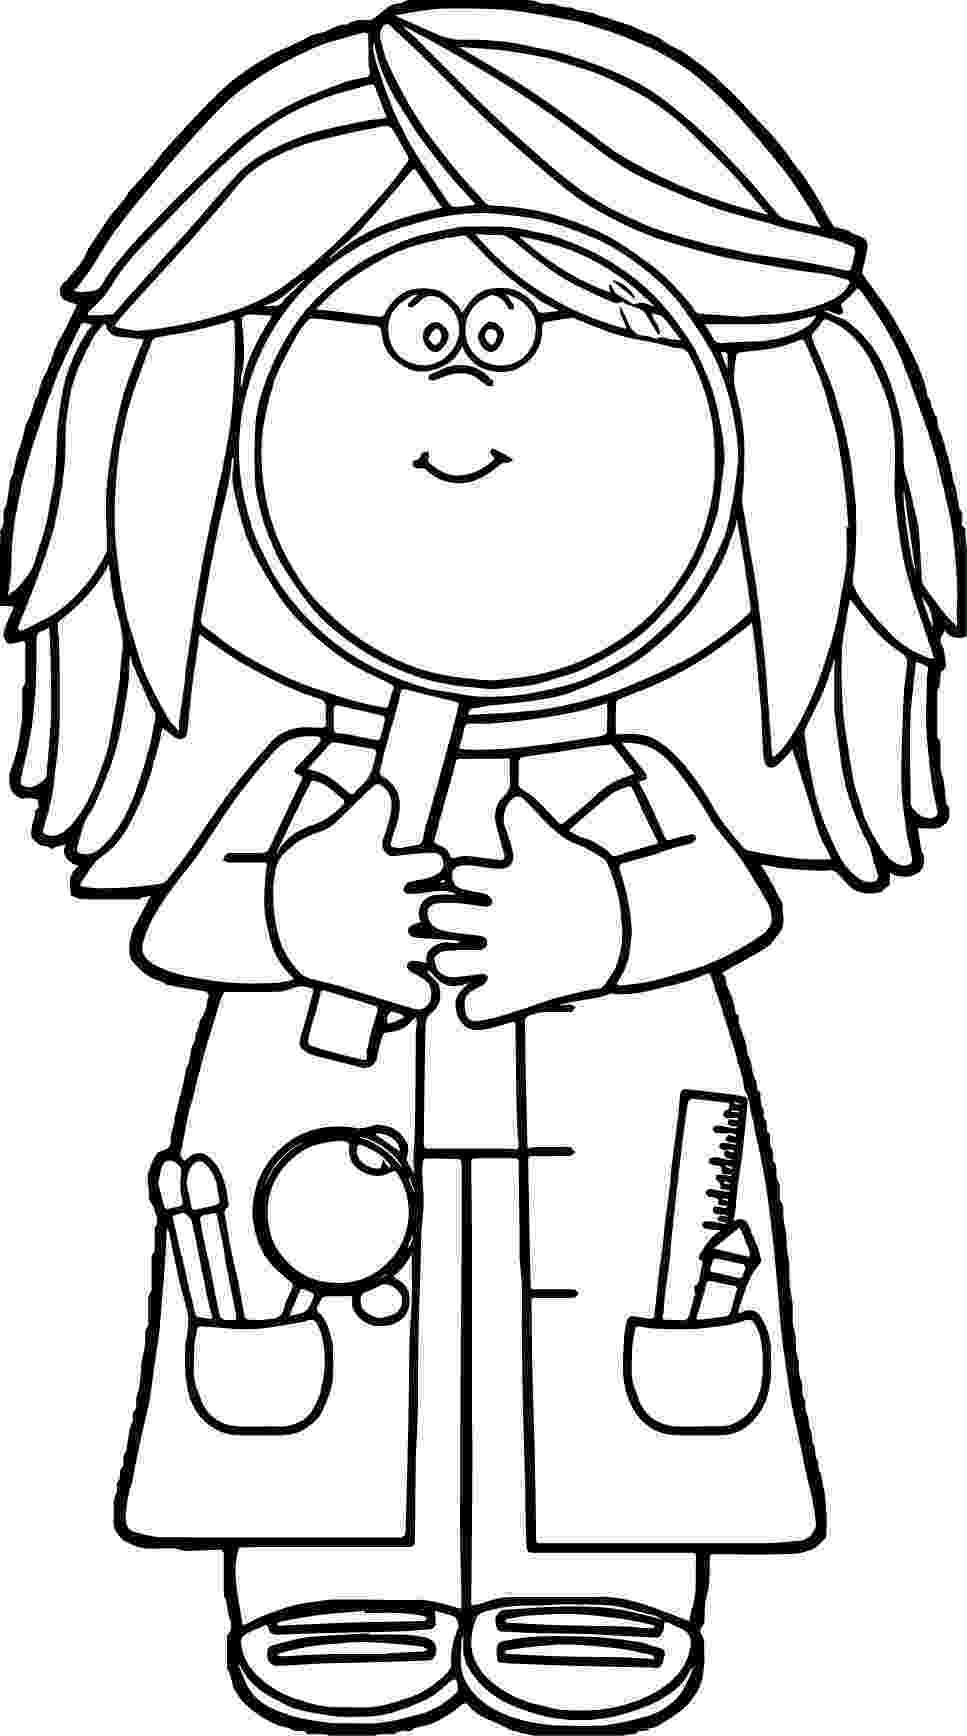 coloring picture of magnifying glass boy with magnifying glass coloring sheet magnifying picture of coloring glass